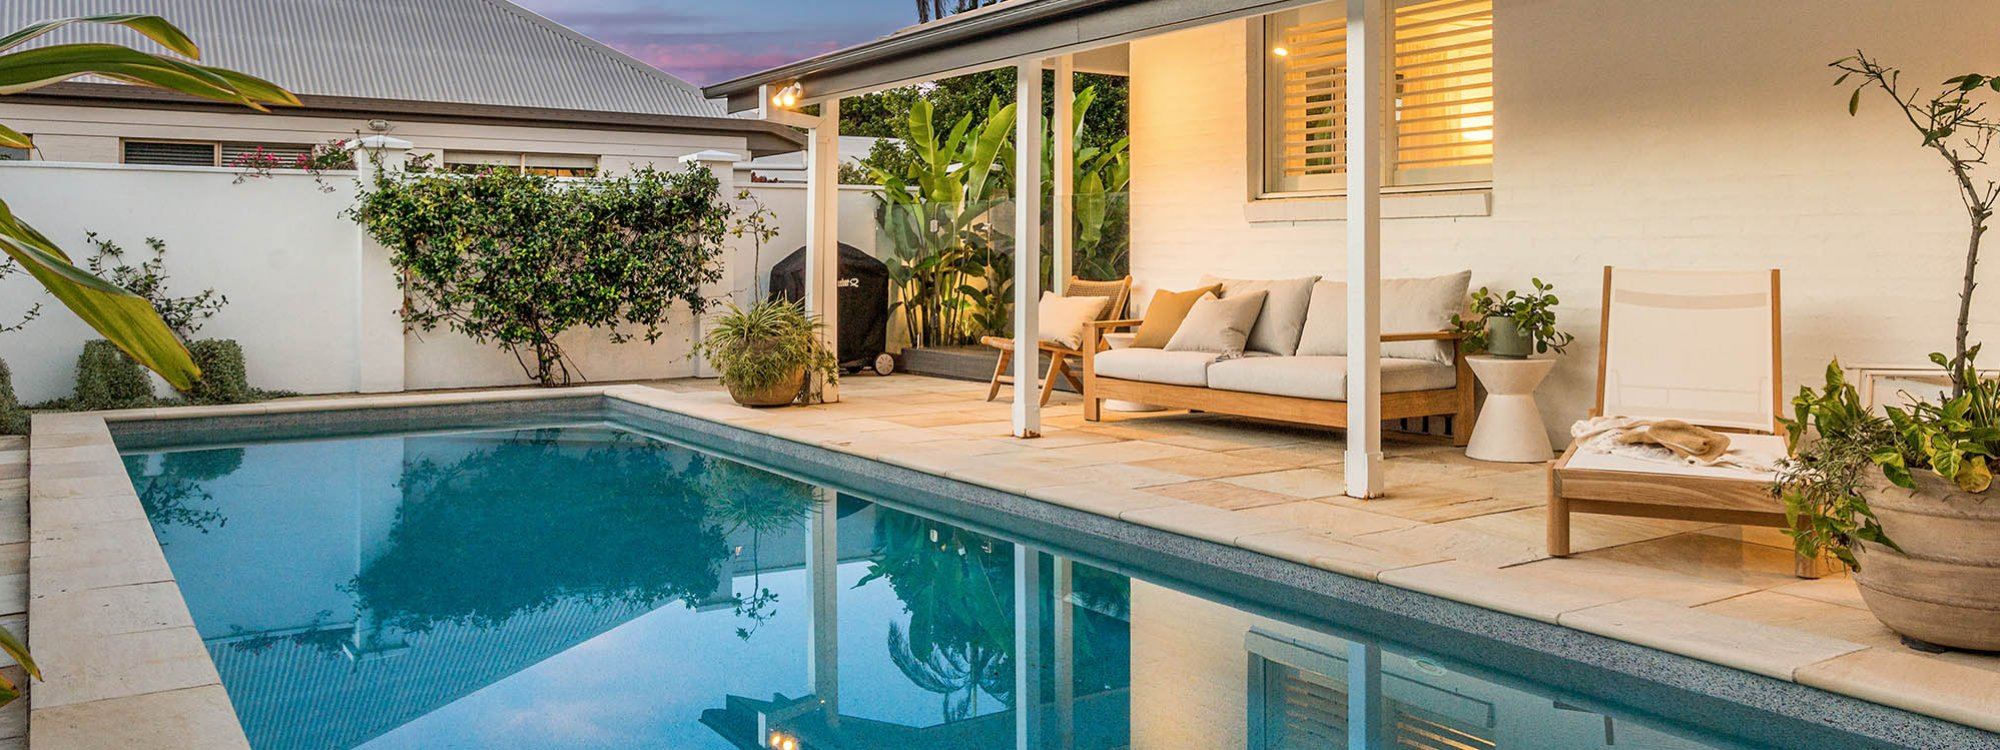 Shutters at Byron - Byron Bay - Pool and Outdoor Seating at Sunset